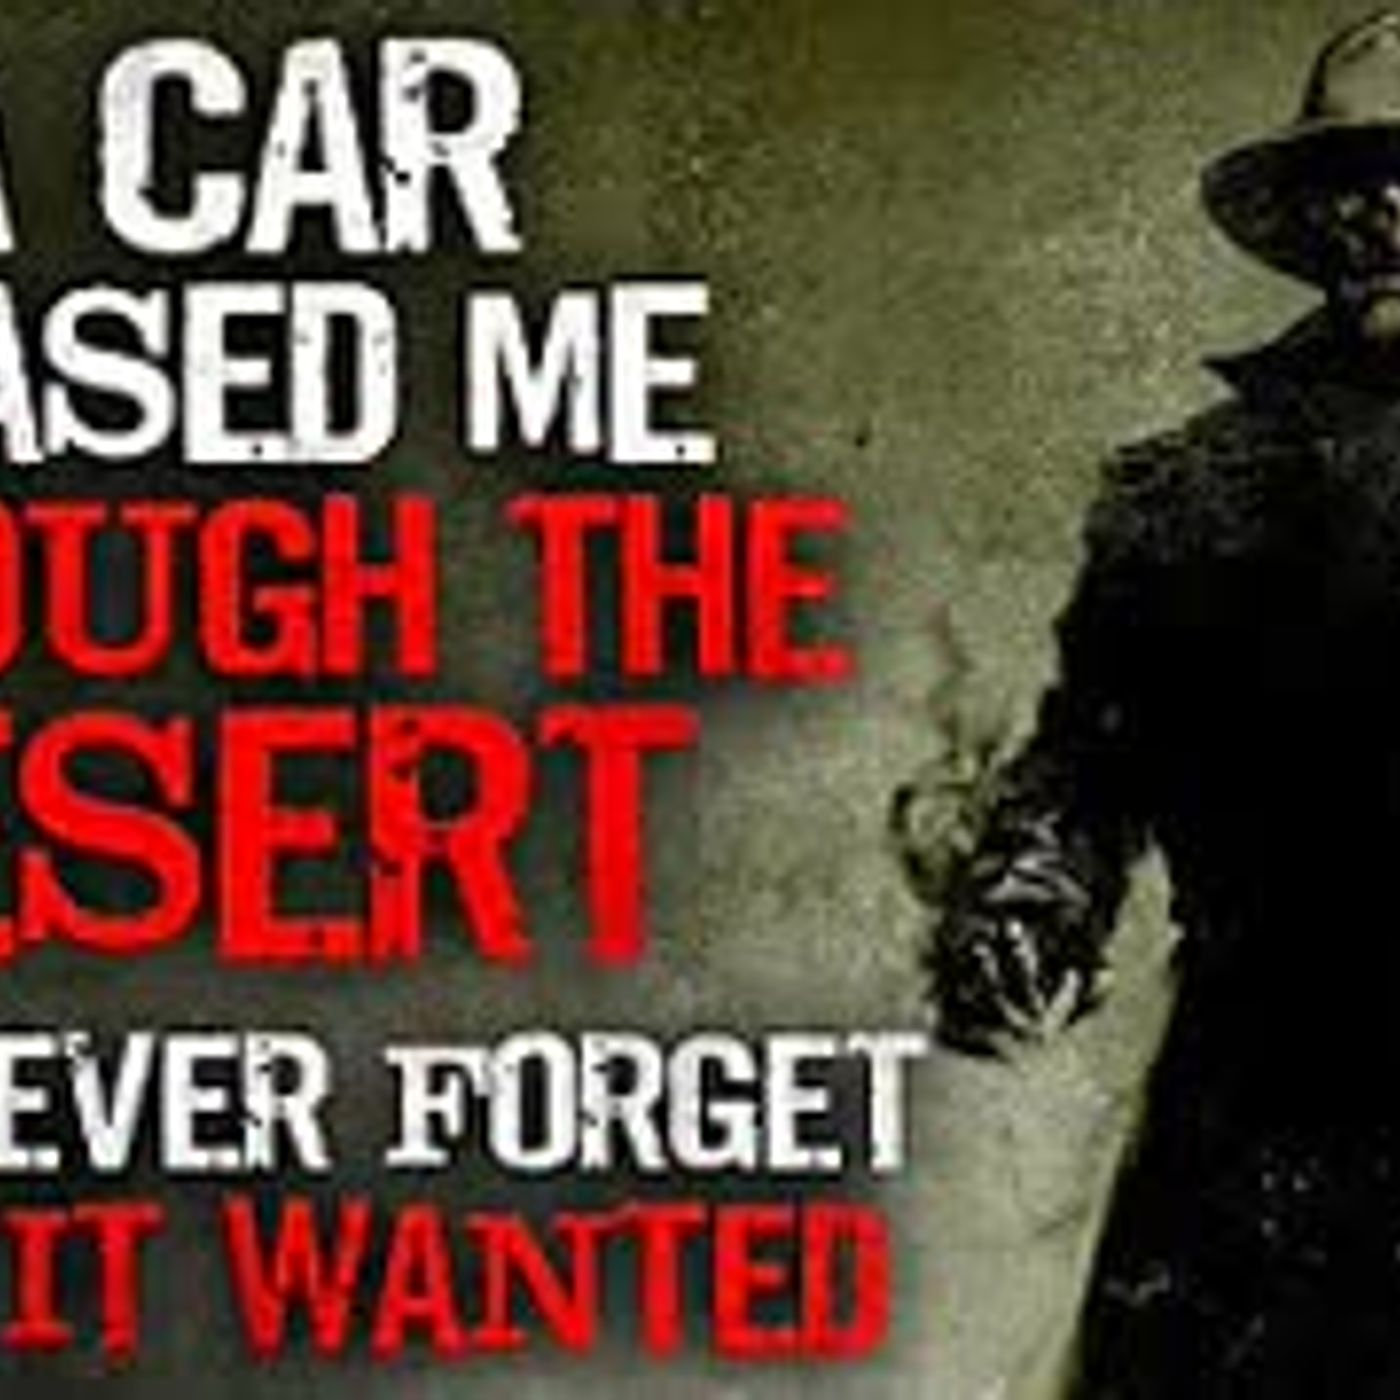 """A car chased me through the desert. I'll never forget what it wanted"" Creepypasta"